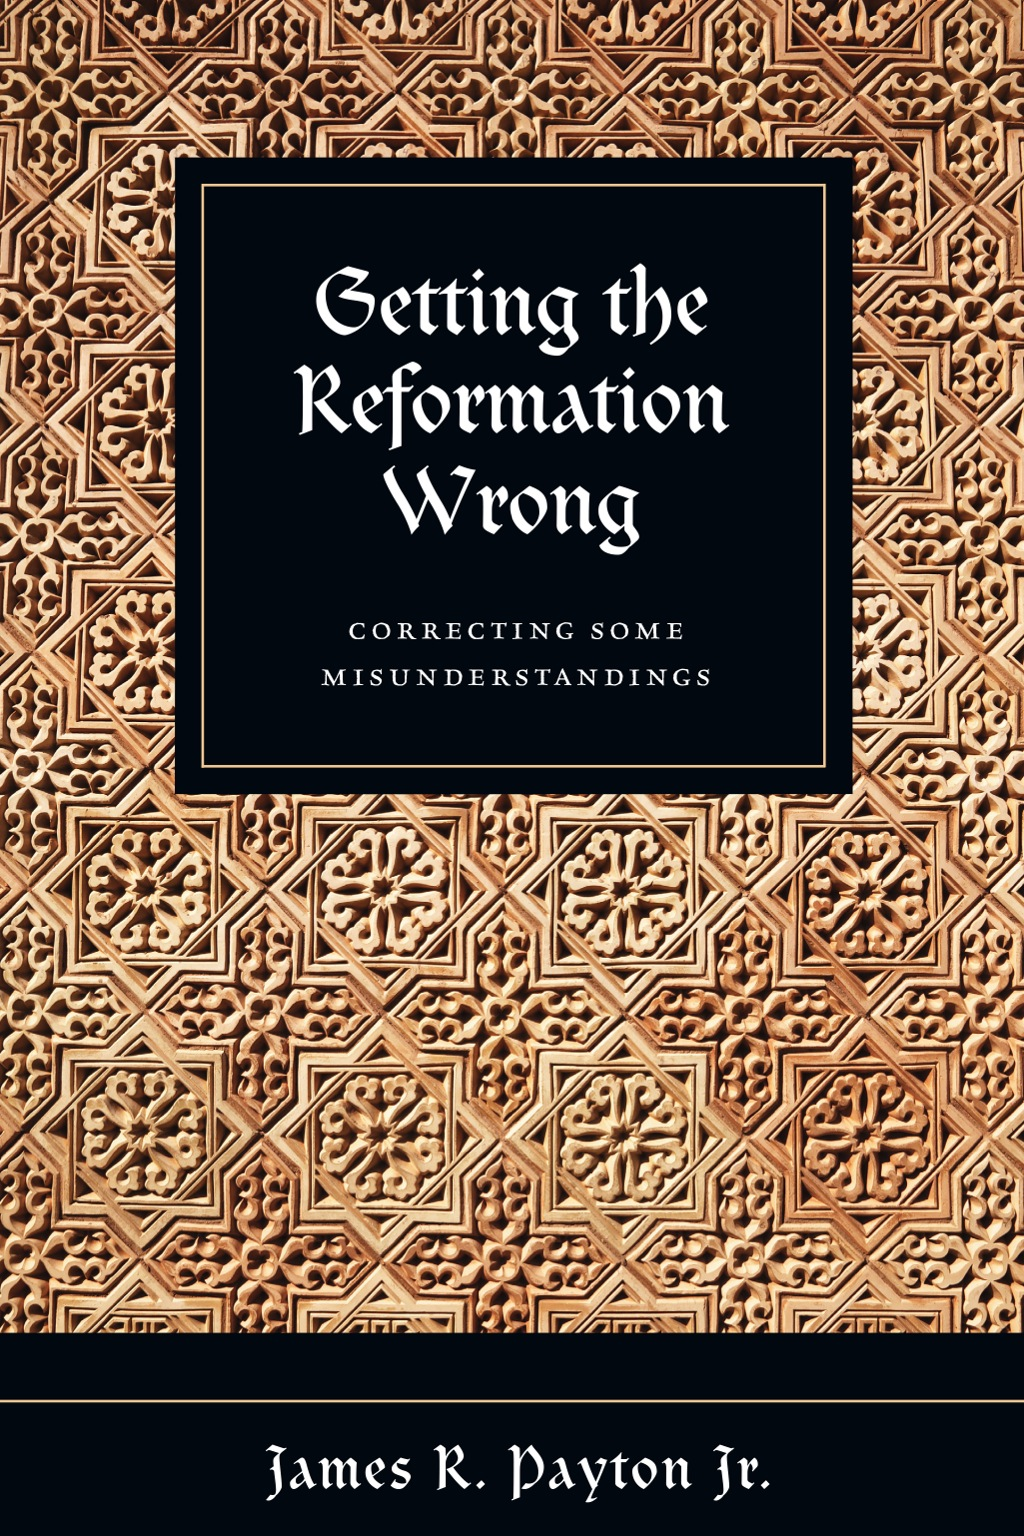 Getting the Reformation Wrong: Correcting Some Misunderstandings (eBook)